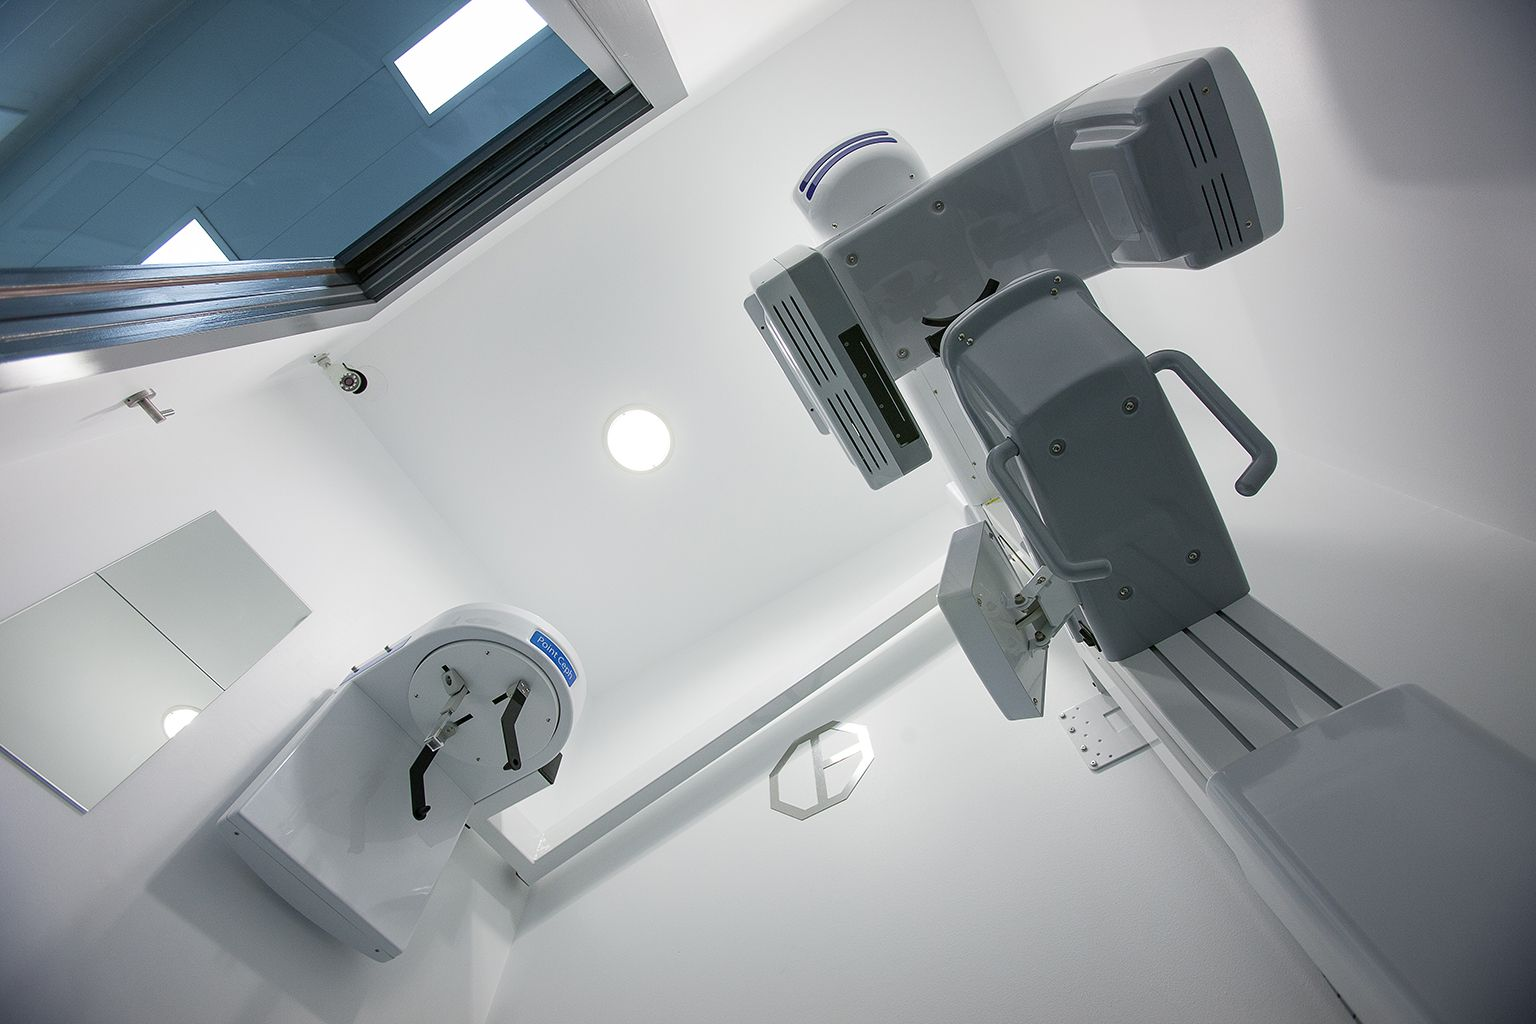 Dental clinic Padrós has the Pointnix 3D digital radiology system, with large size and high resolution sensor.